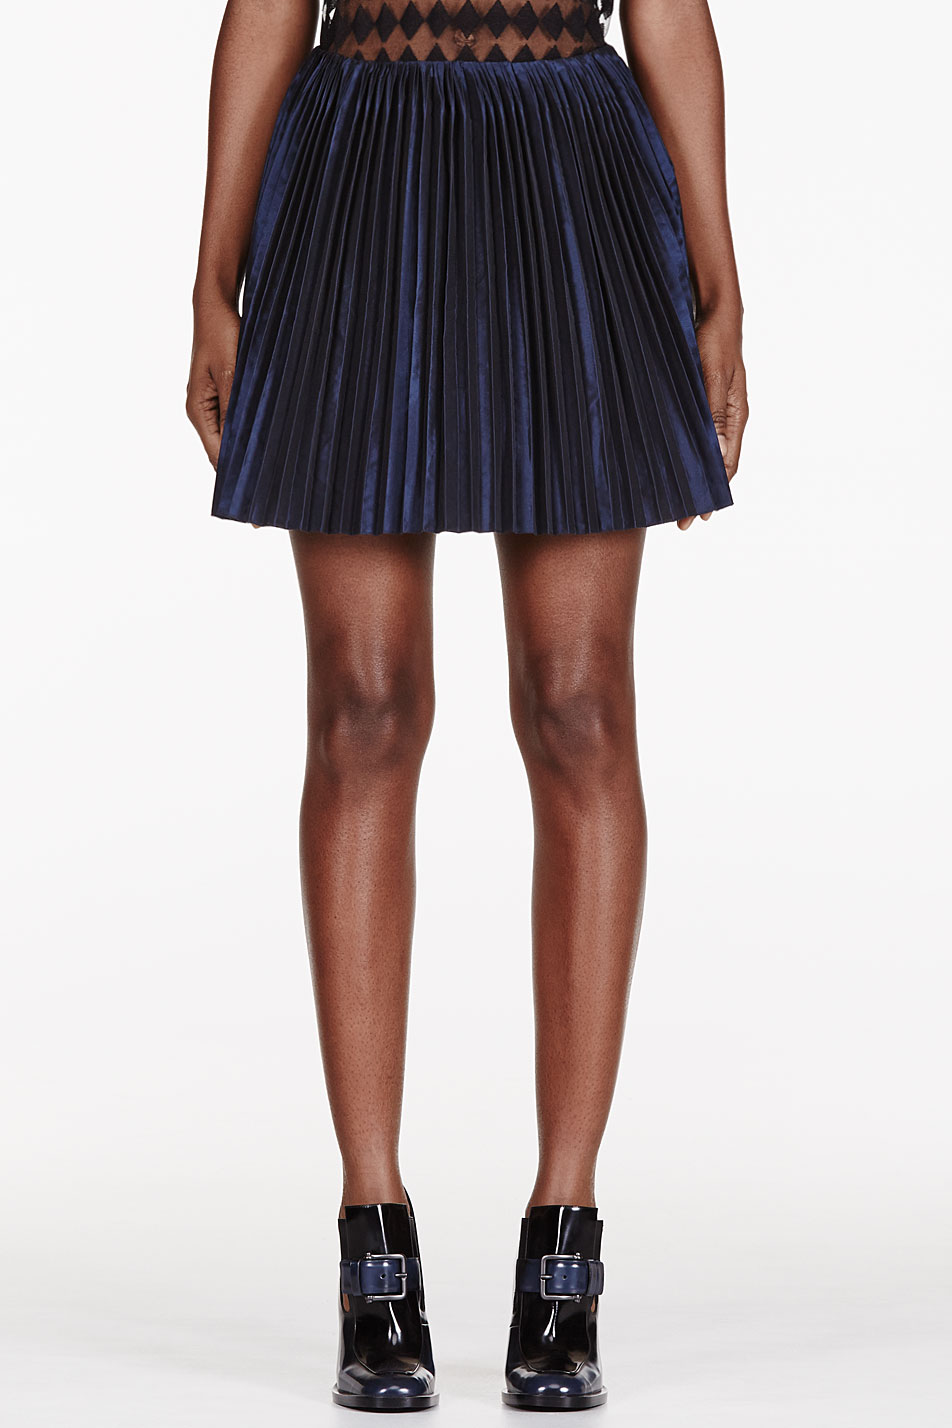 maiyet navy stiff pleat short skirt